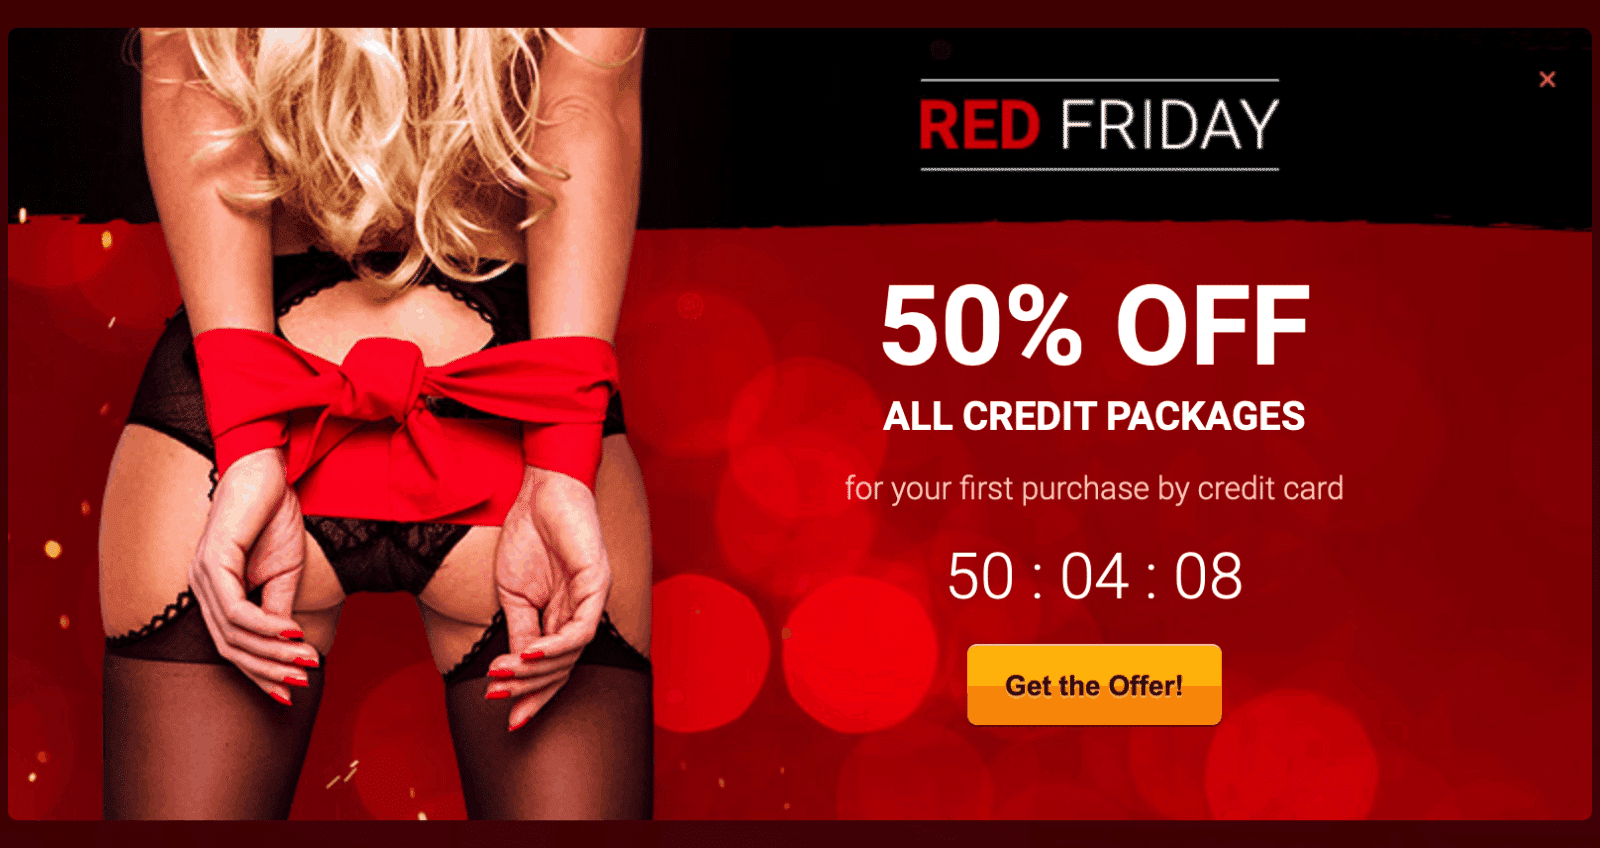 Livejasmin Black Friday - The 50% OFF